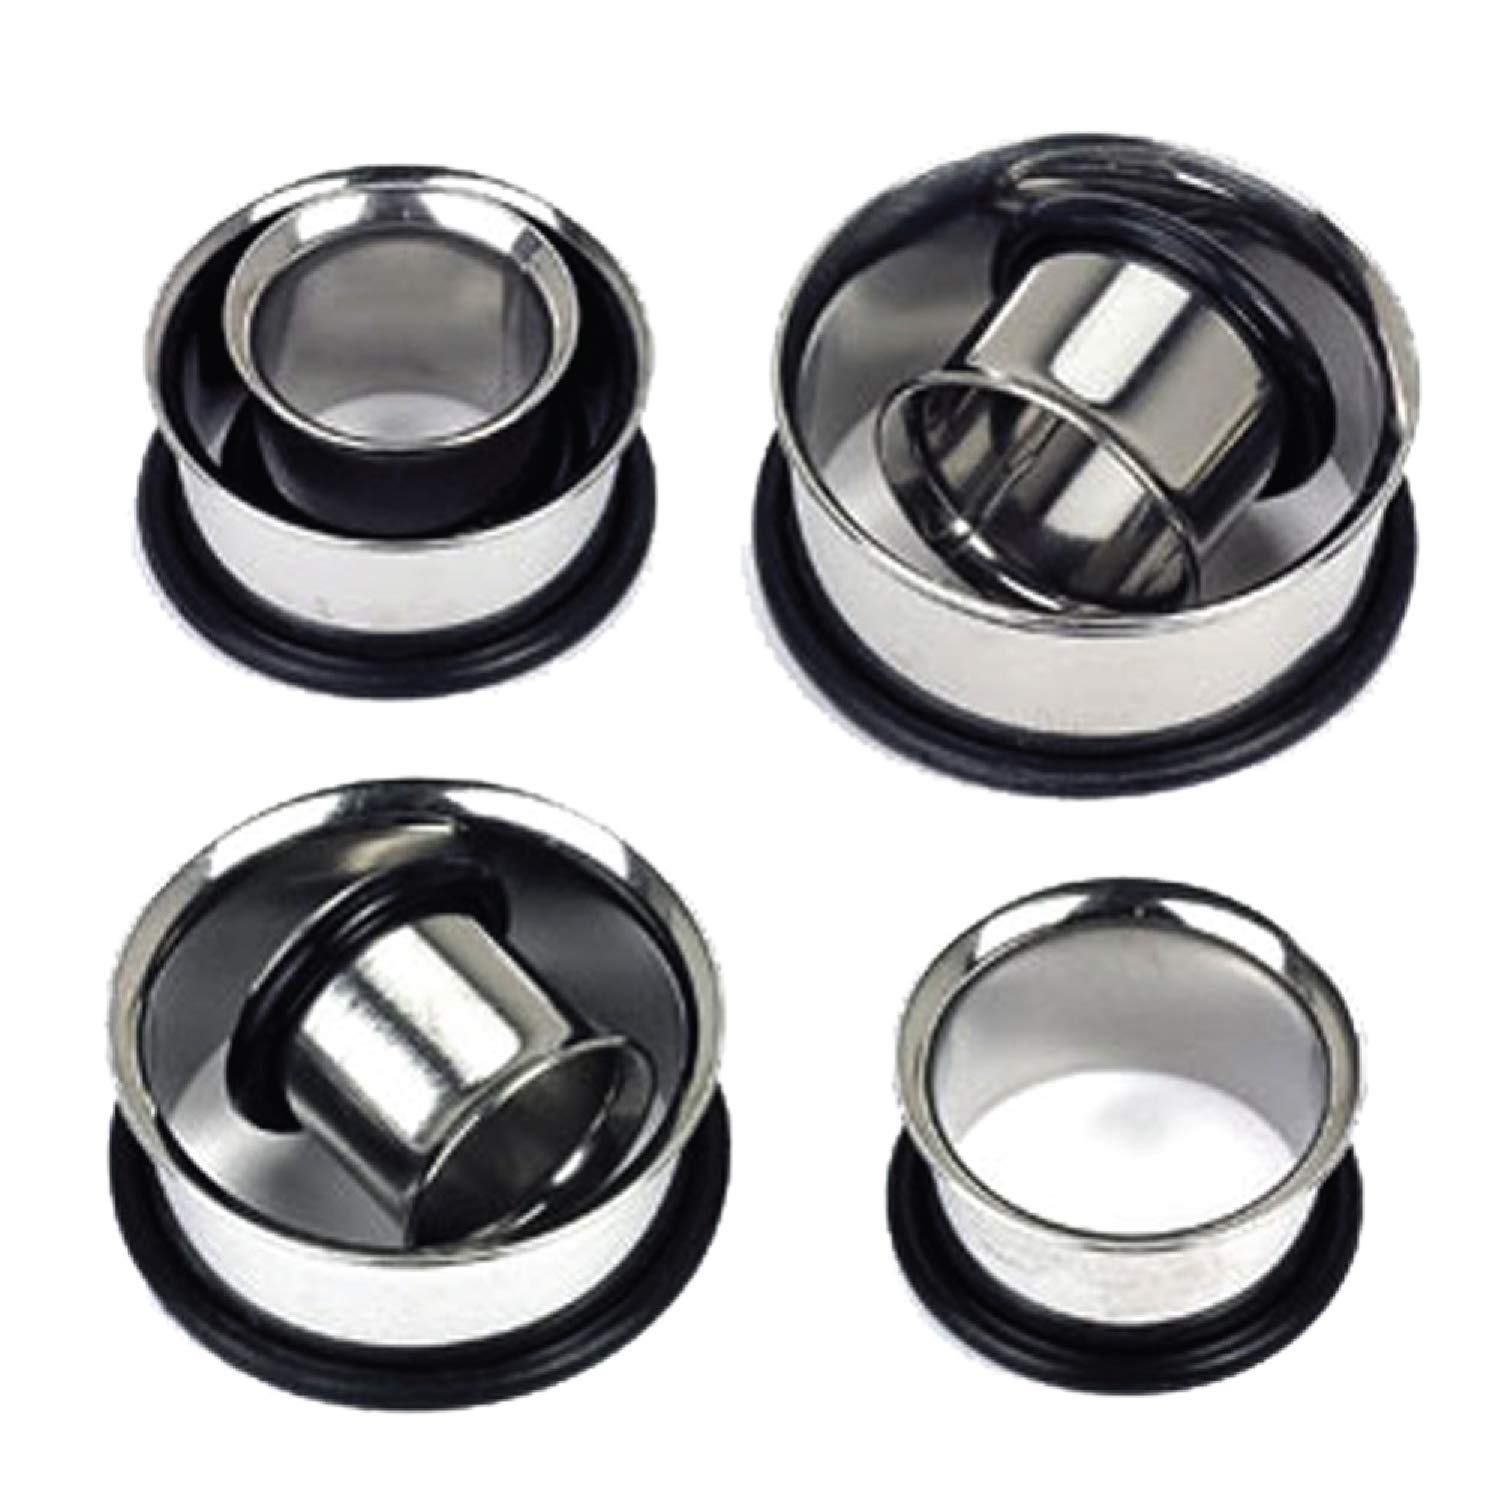 Plugs Kit 00G-20mm Stainless Steel Plugs Stretching Kit (10mm-20mm) 12PC BodyJ4You PL6127